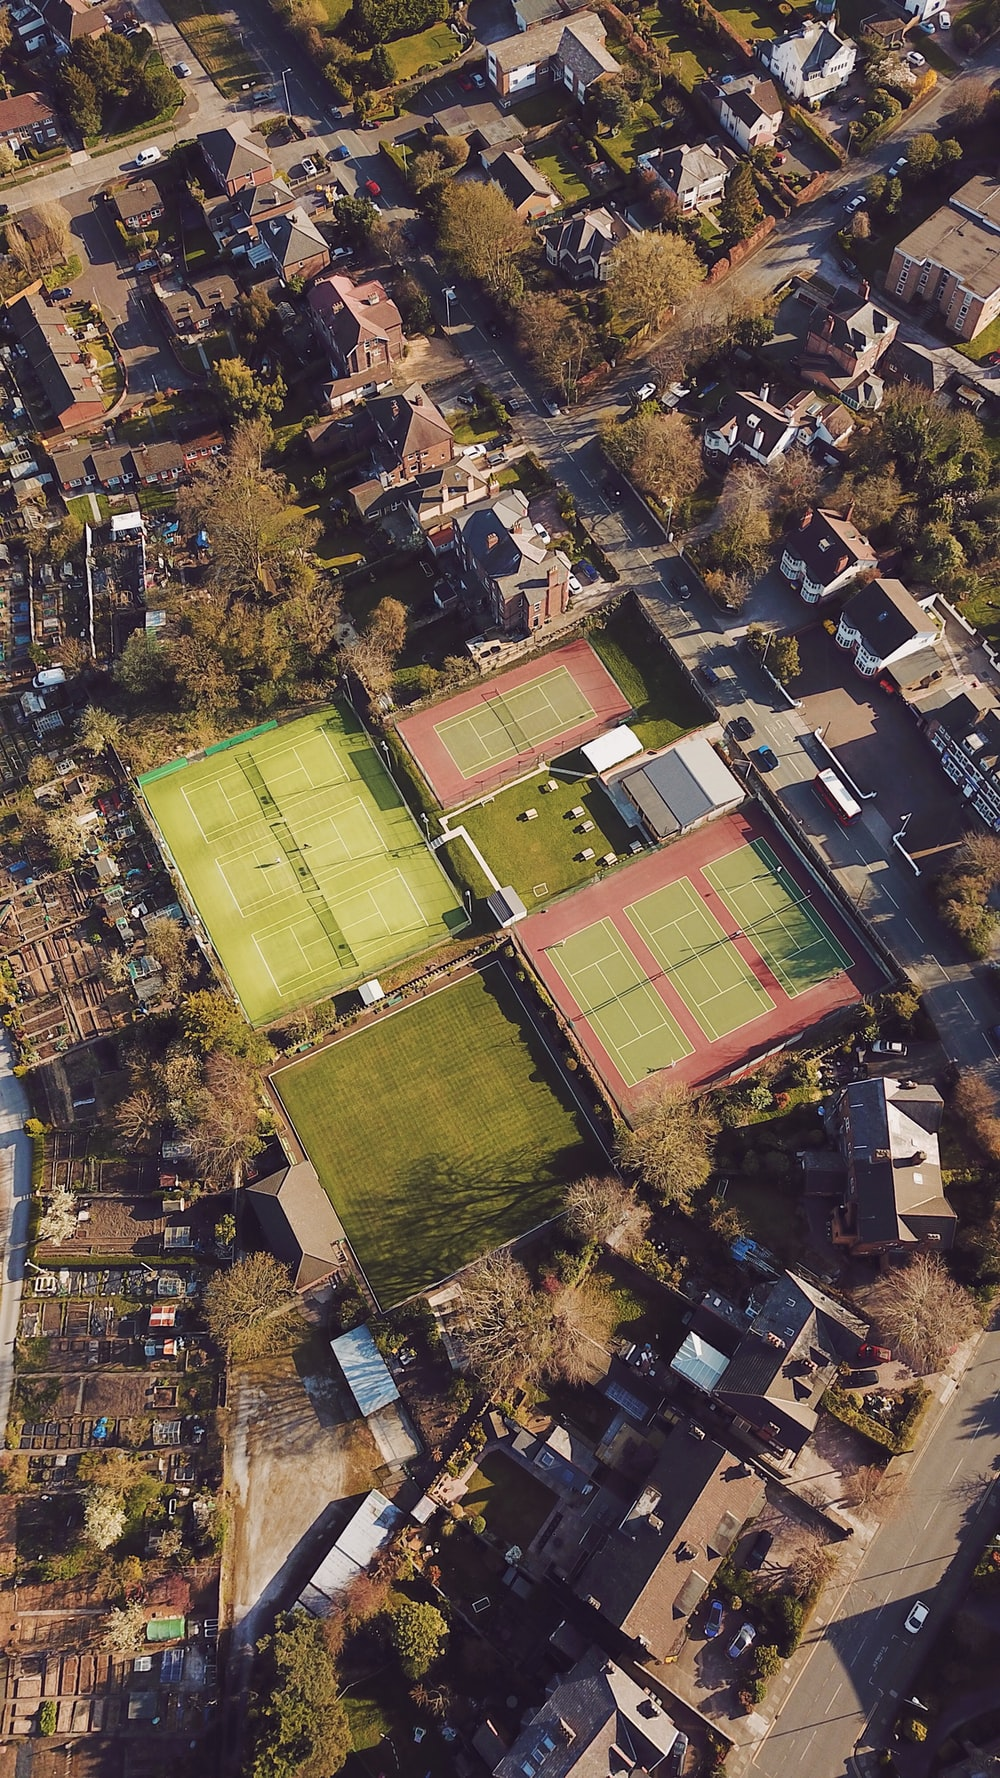 aerial view of green and brown soccer field